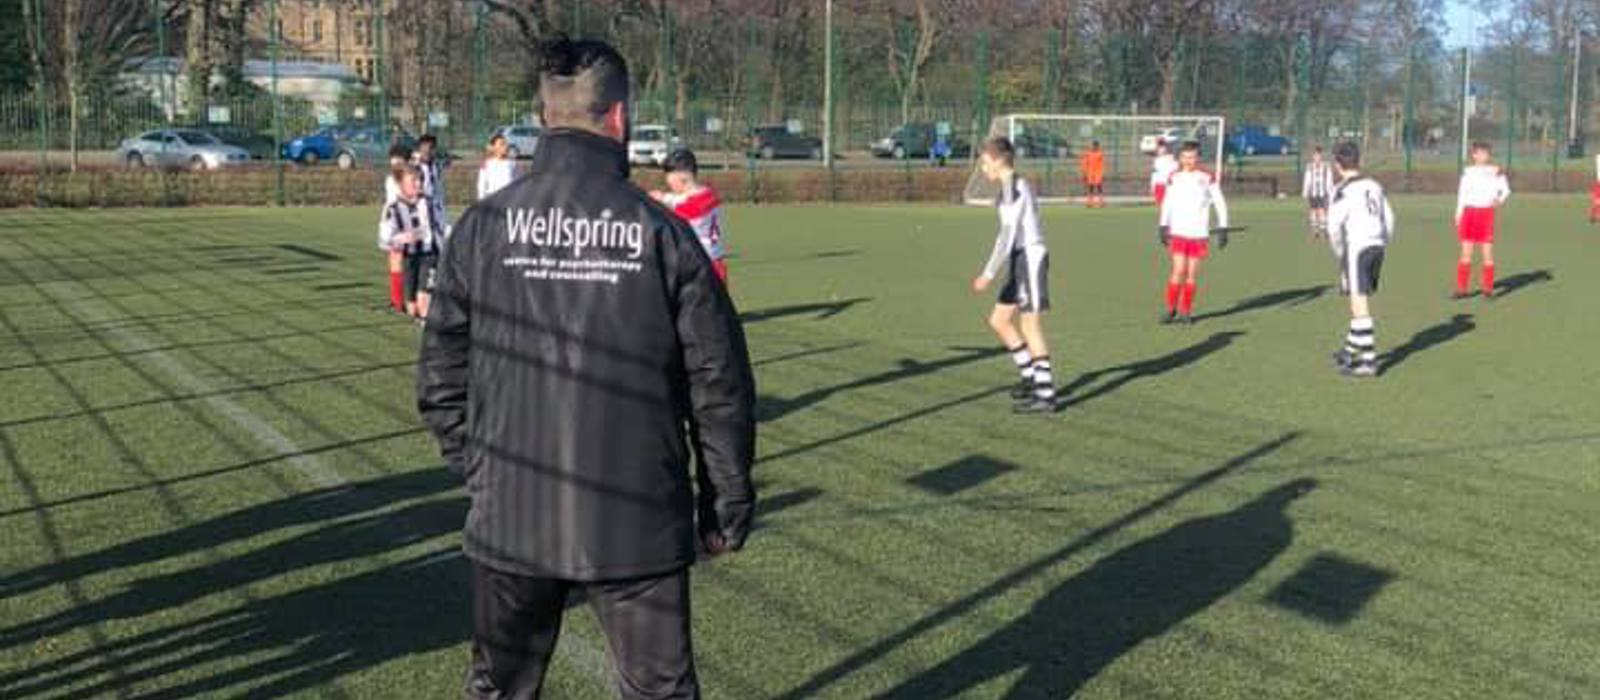 It's a Goal! Wellspring and North Merchiston F.C Partner Up to Promote Mental Health